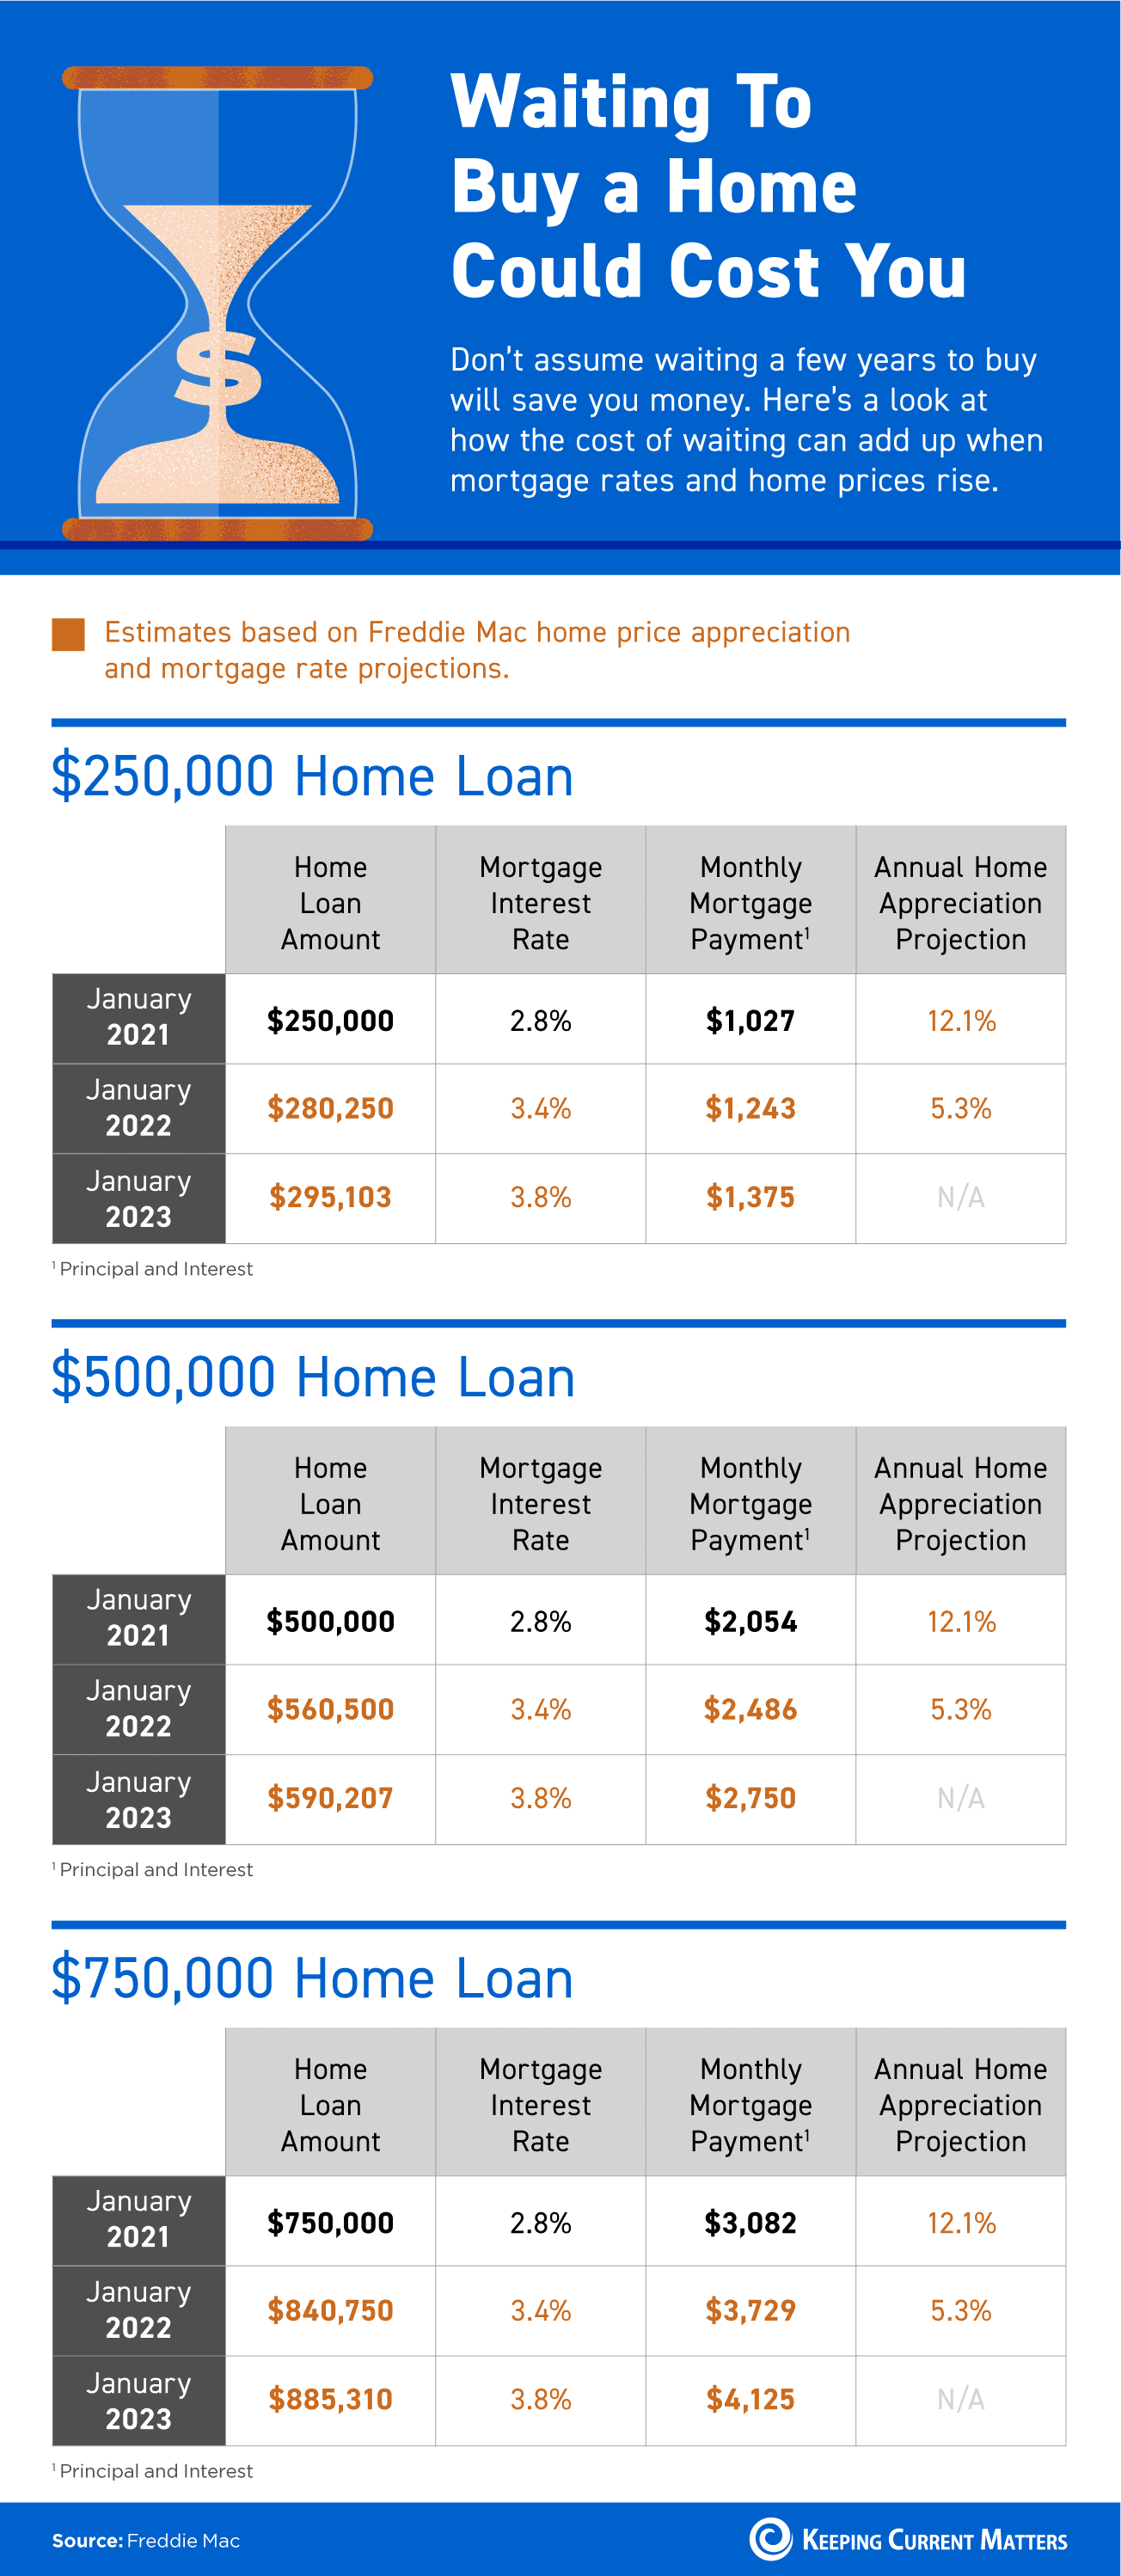 Waiting To Buy a Home Could Cost You [INFOGRAPHIC] | Keeping Current Matters